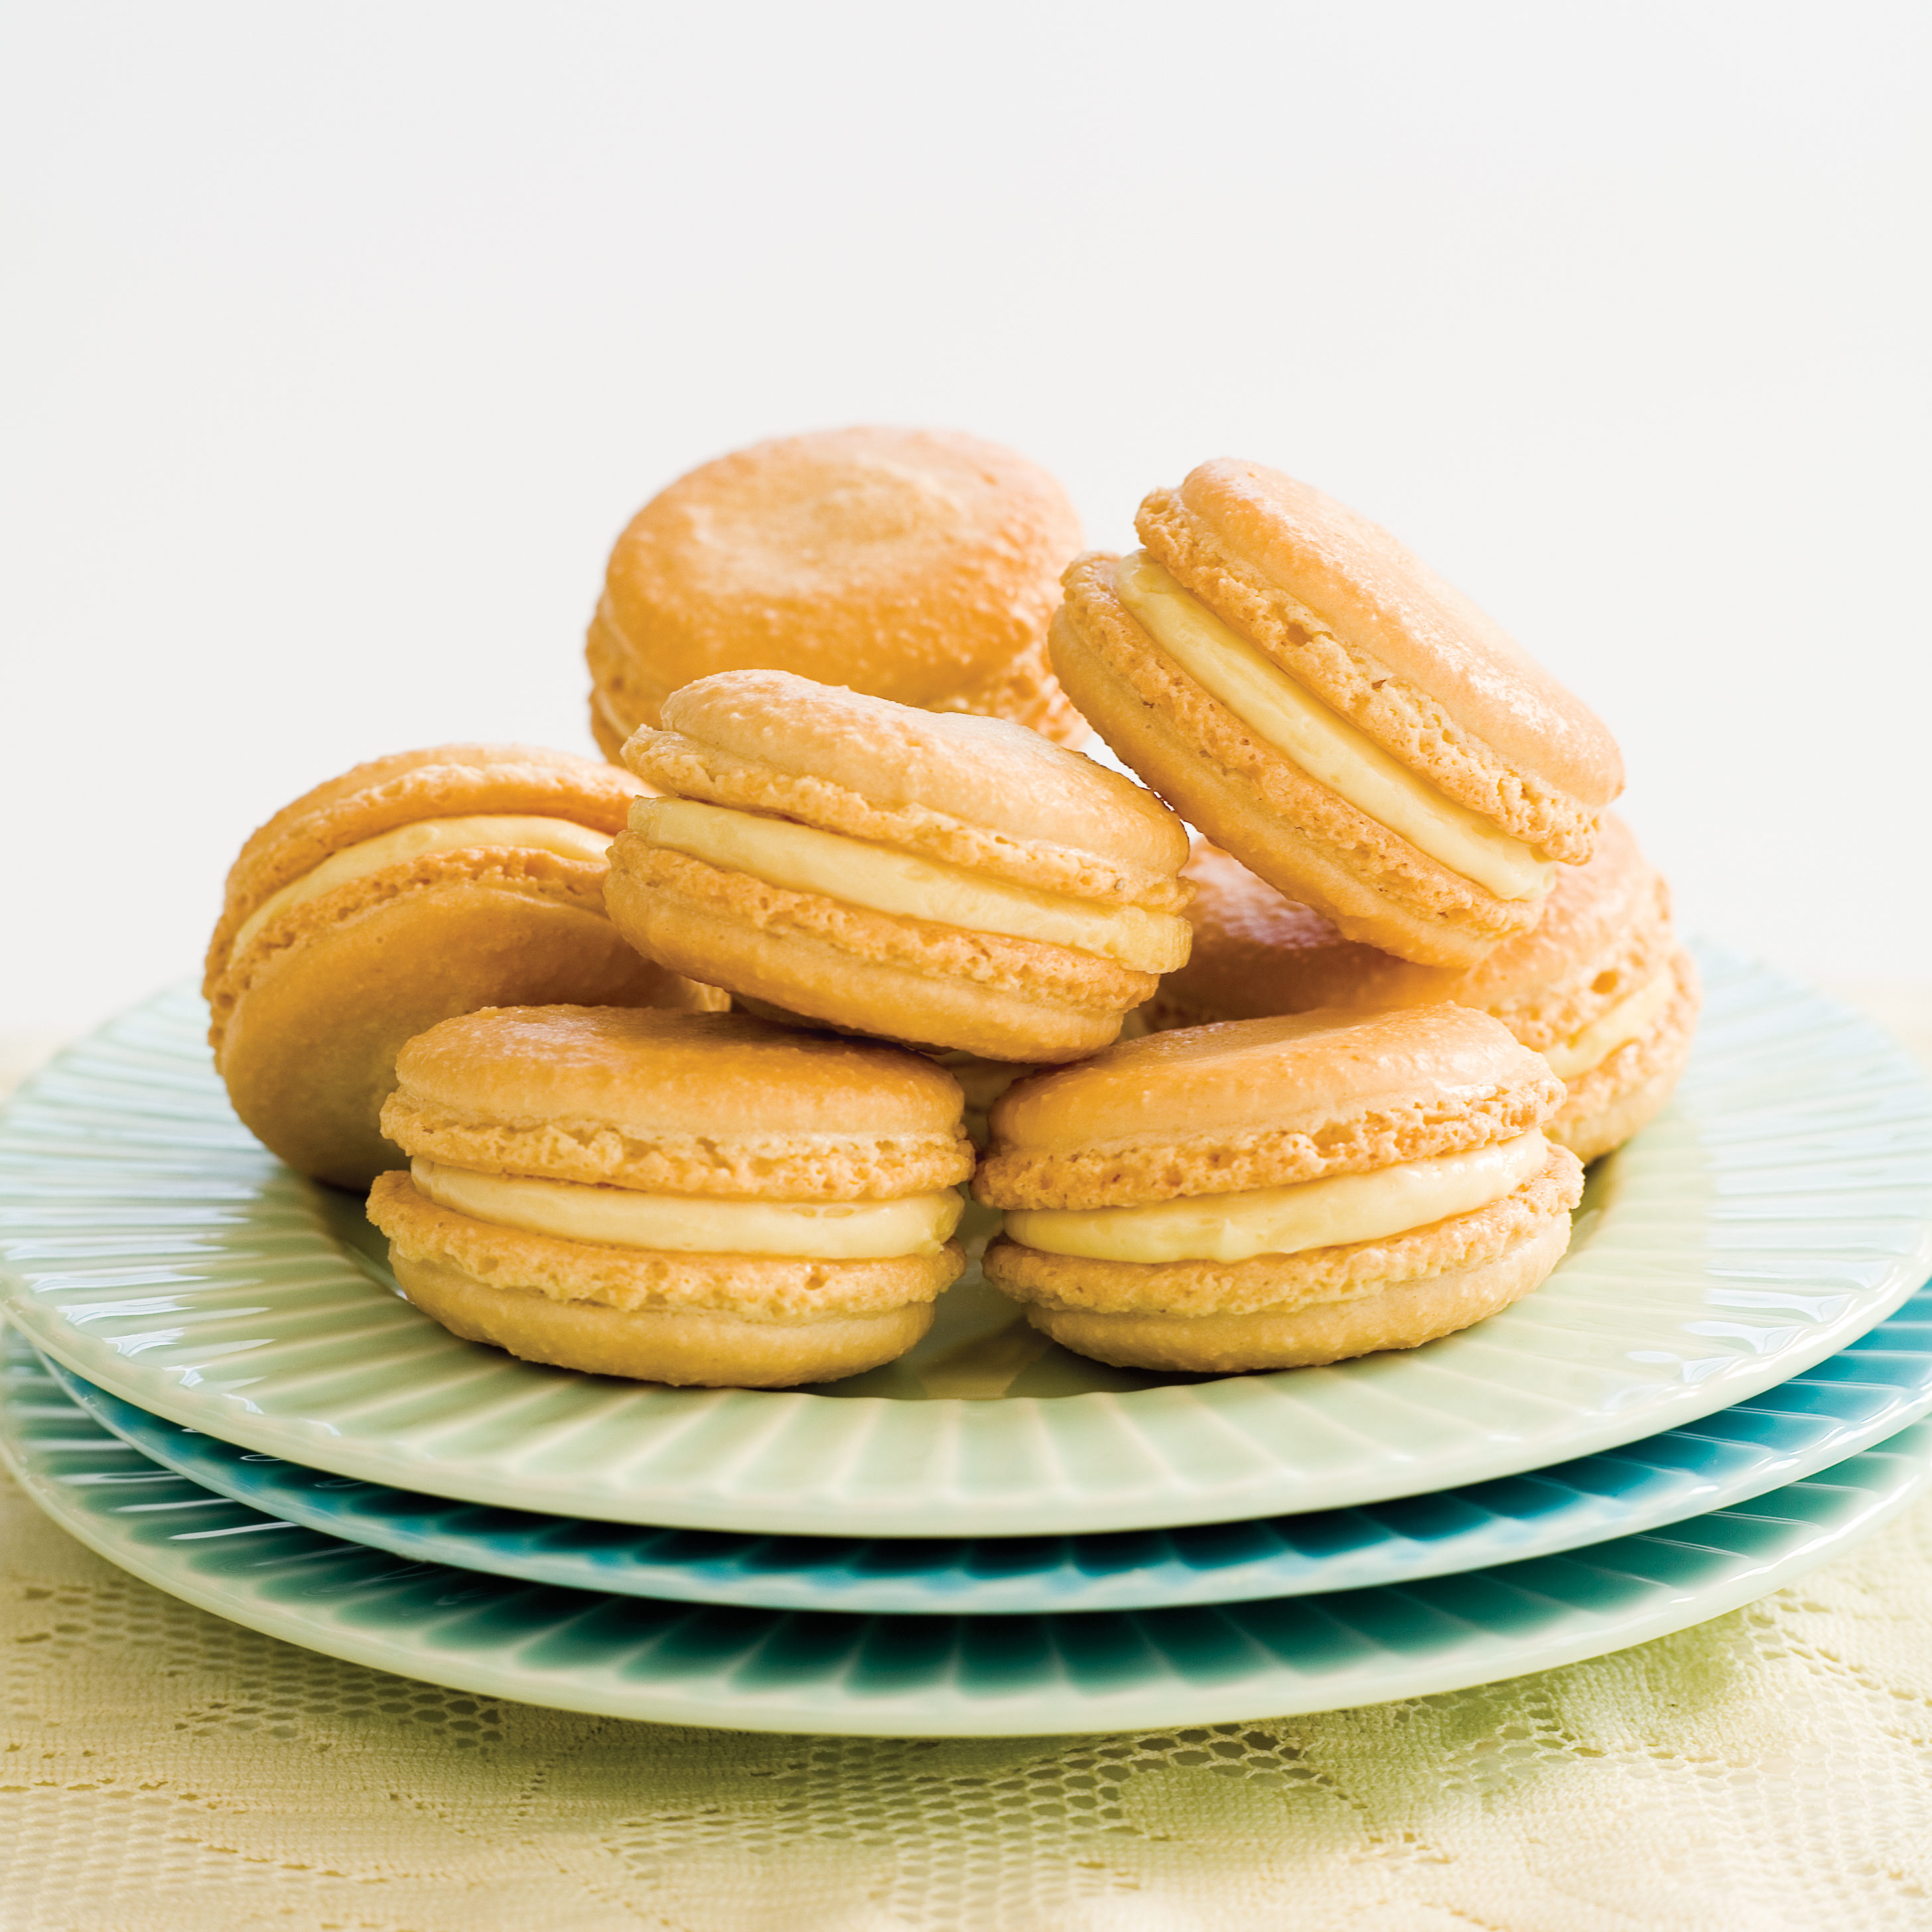 French-Style Macaroons (Macarons) Recipe - Cook's Illustrated